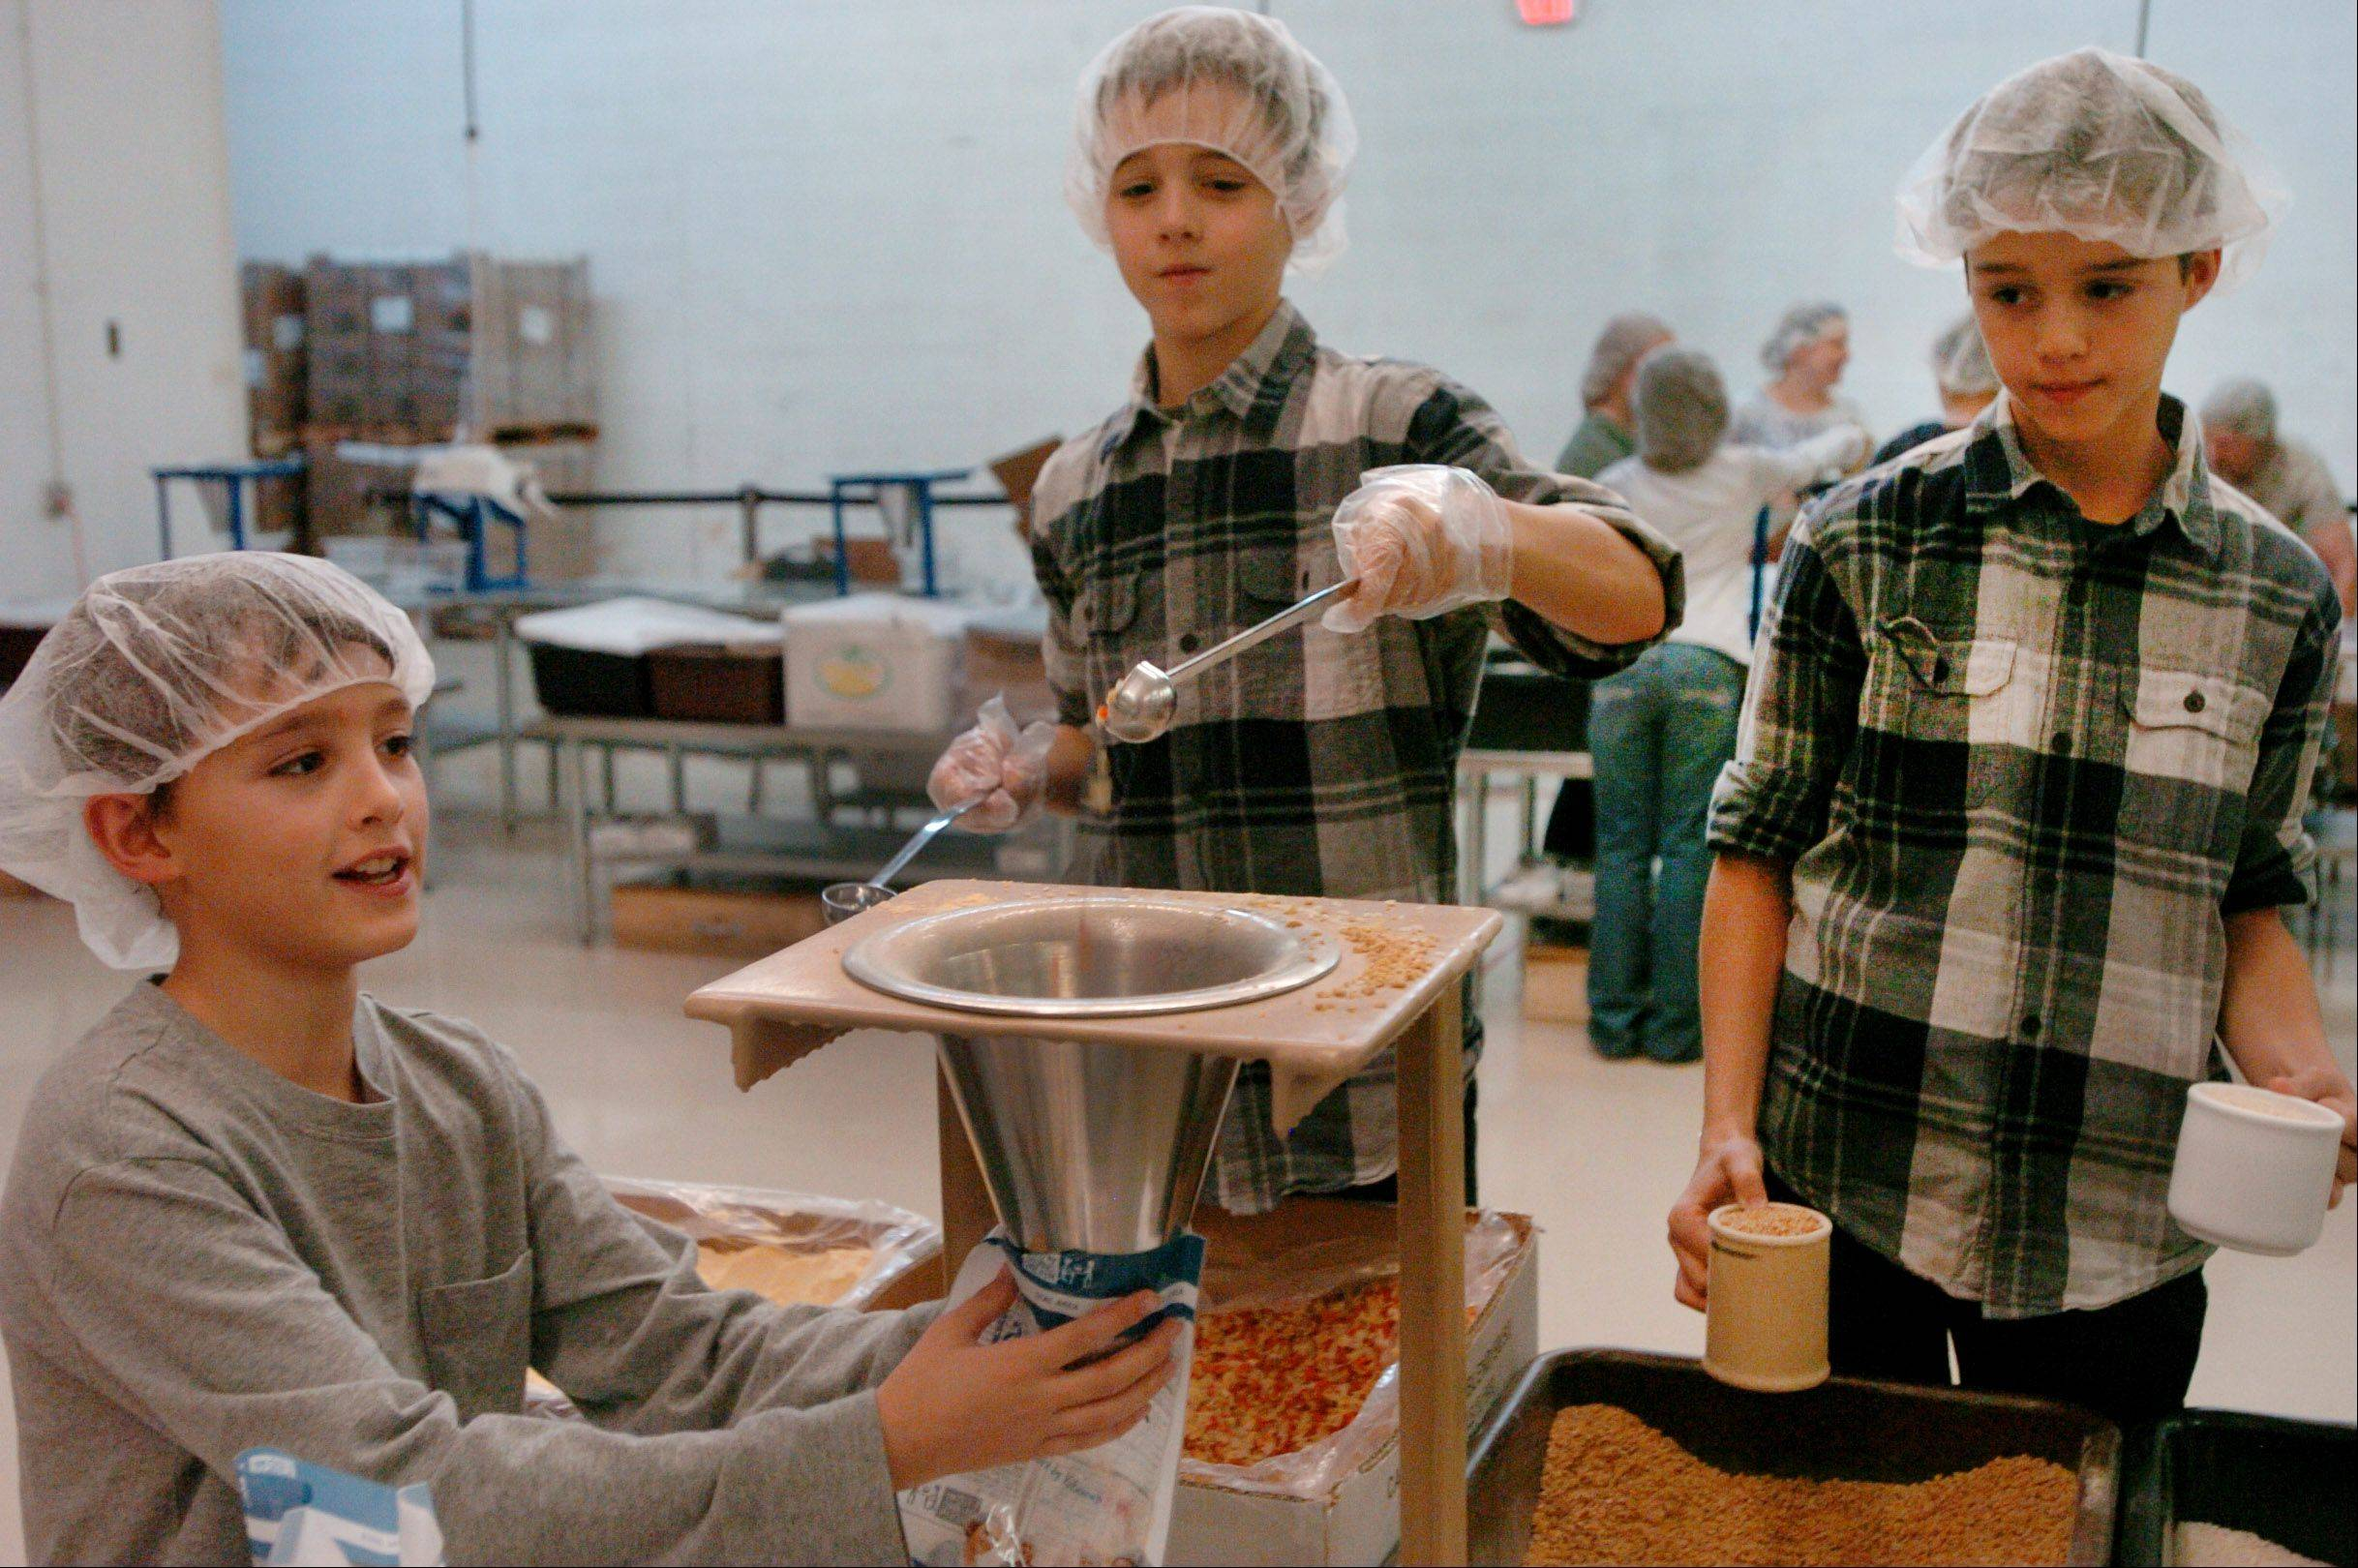 Families from the Fox Valley Home Schoolers worked together recently at the Feed My Starving Children location in Schaumburg. Pictured, from left, are Kenton Weiss of Huntley, and Quinn and Kyle Schieler of Elgin.